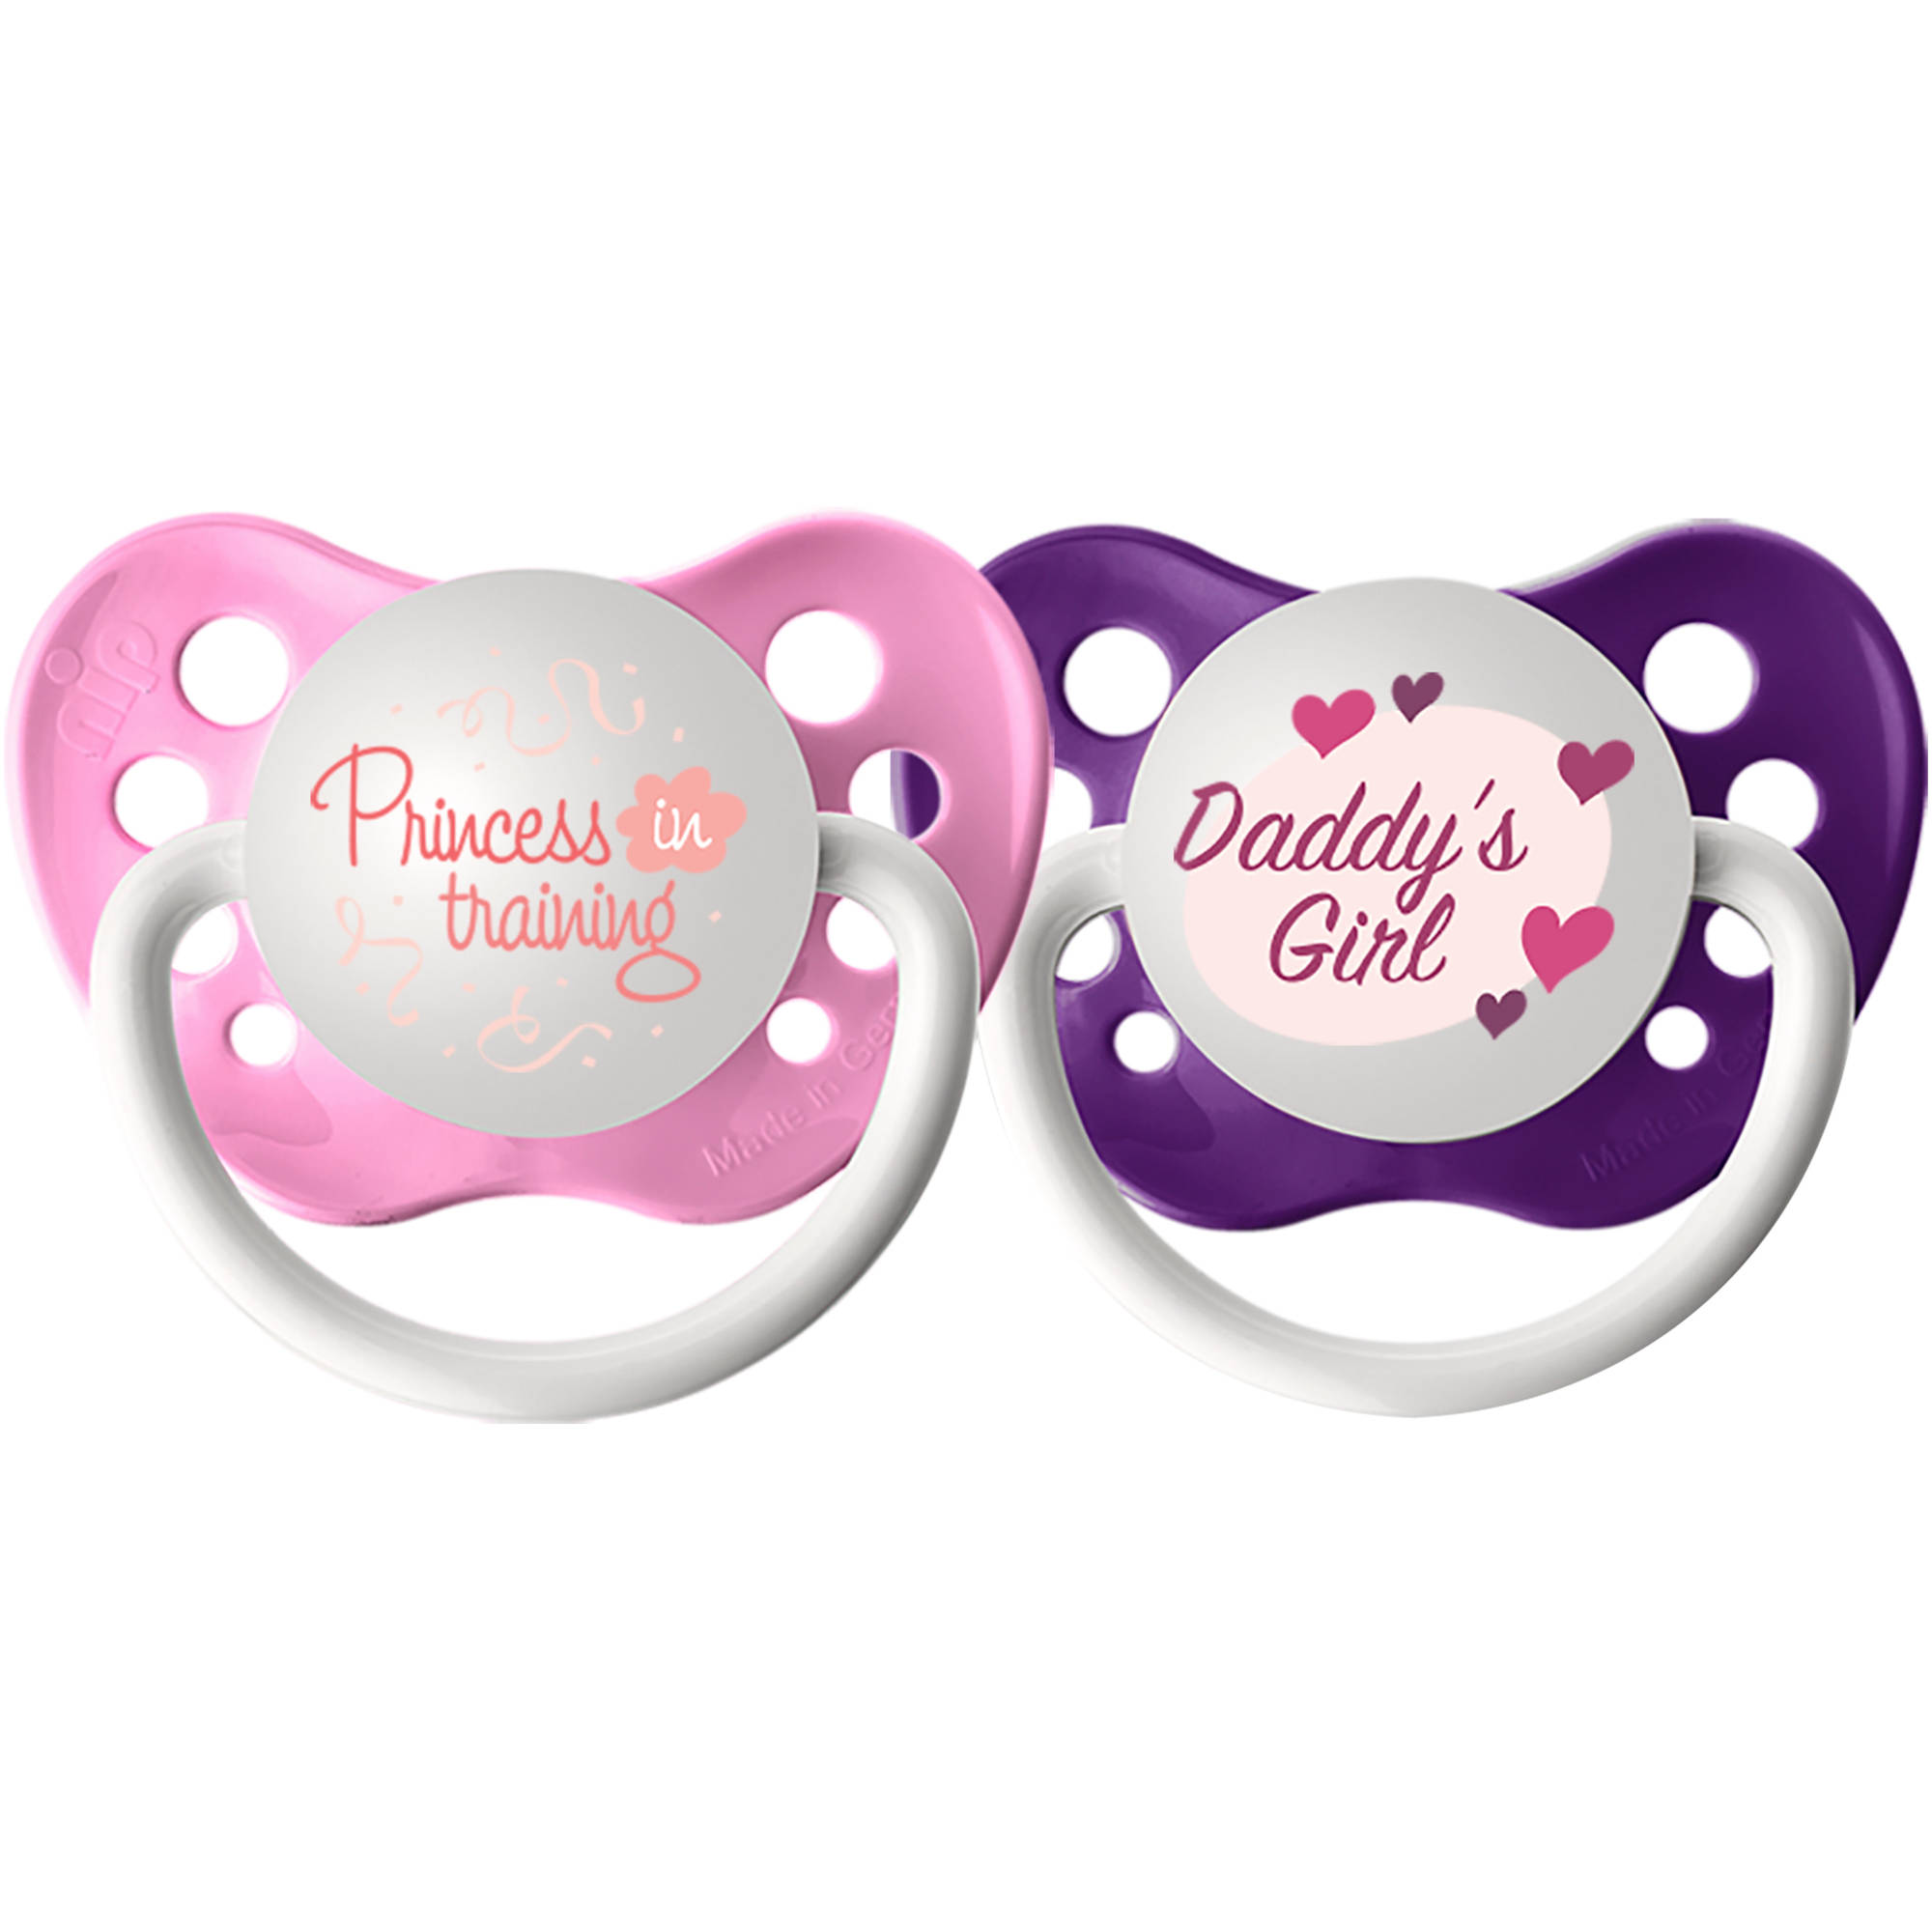 Ulubulu Princess in Training/Daddy's Girl, 6-18 Month, 2-Pack